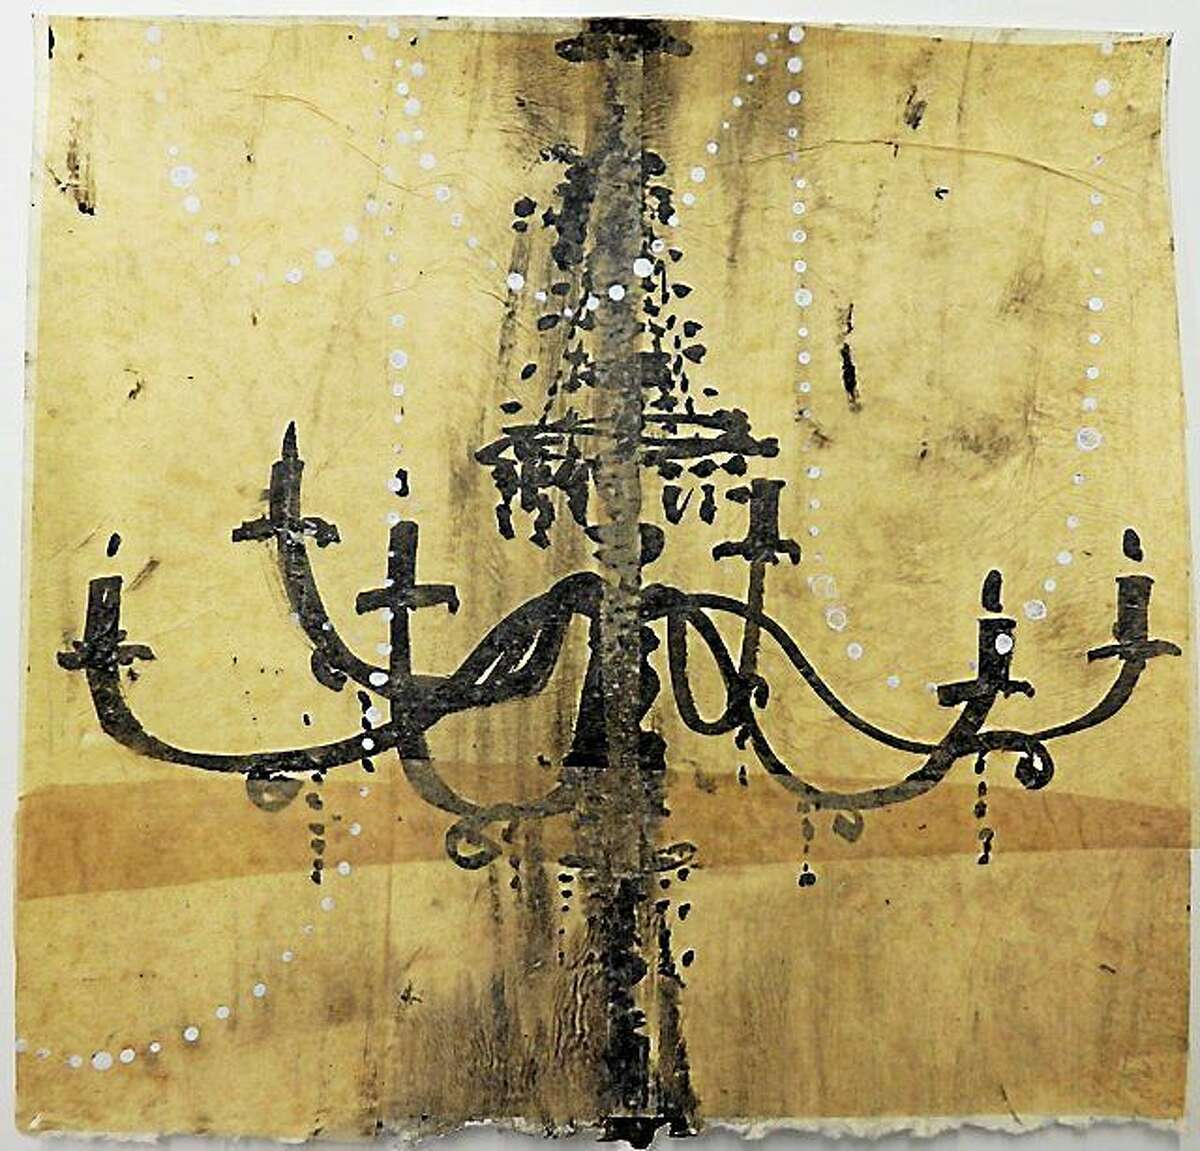 """Contributed photos Janice La Motta, """"Chandelier Study no. 40,"""" 2014, ink, gesso & chine colle, 7 ½ x 7 ½ inches, is part of Five Points Gallery's new exhibit, opening April 23 in Torrington."""